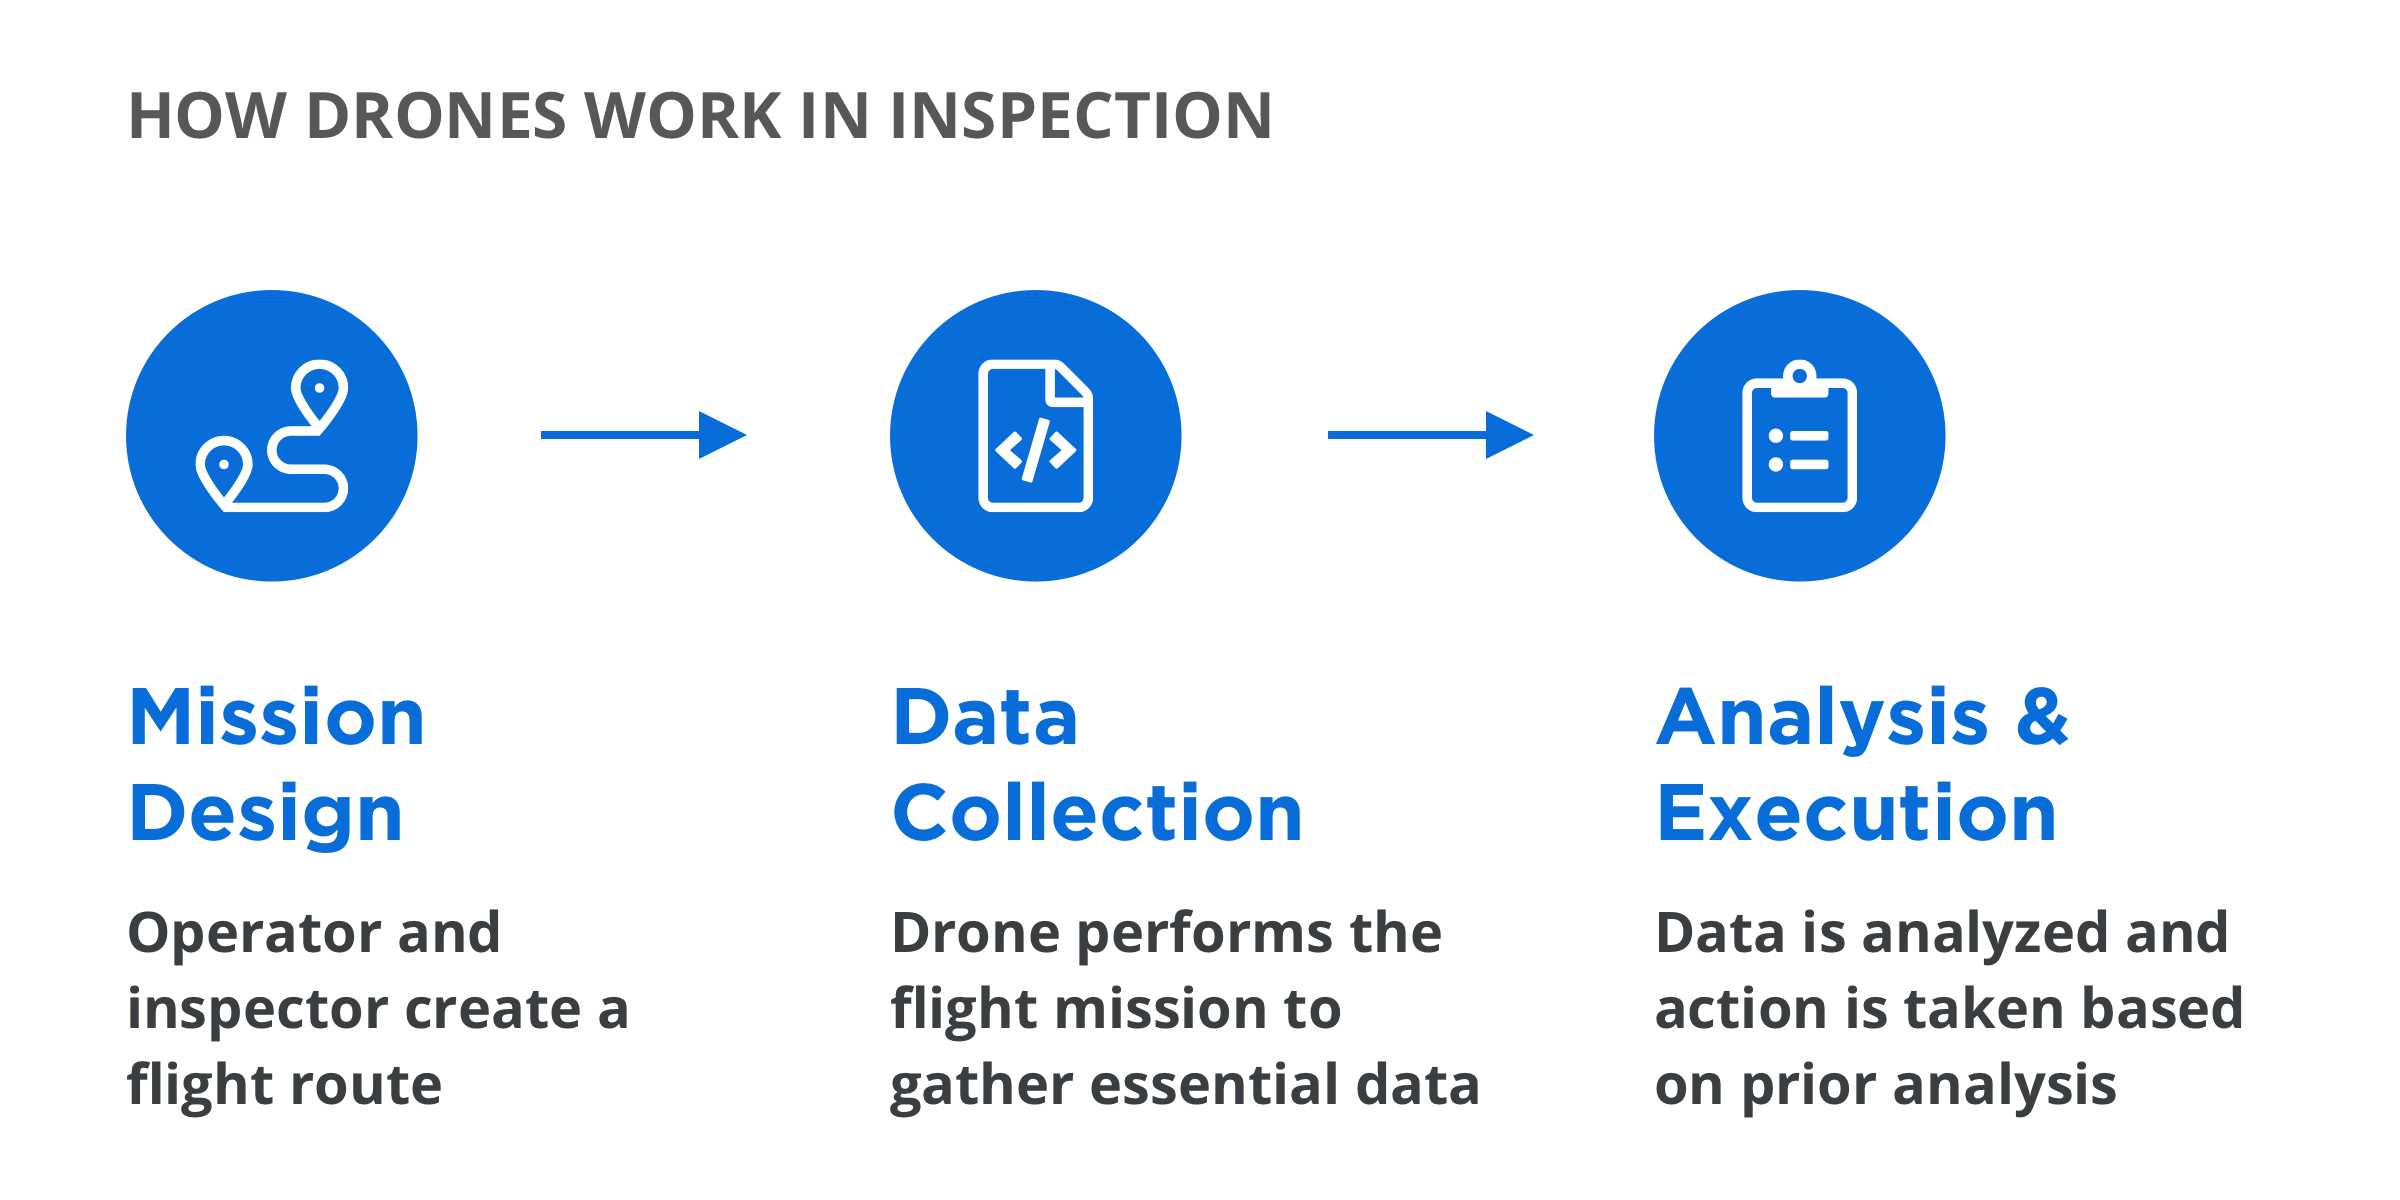 How Drones work in inspection workflow